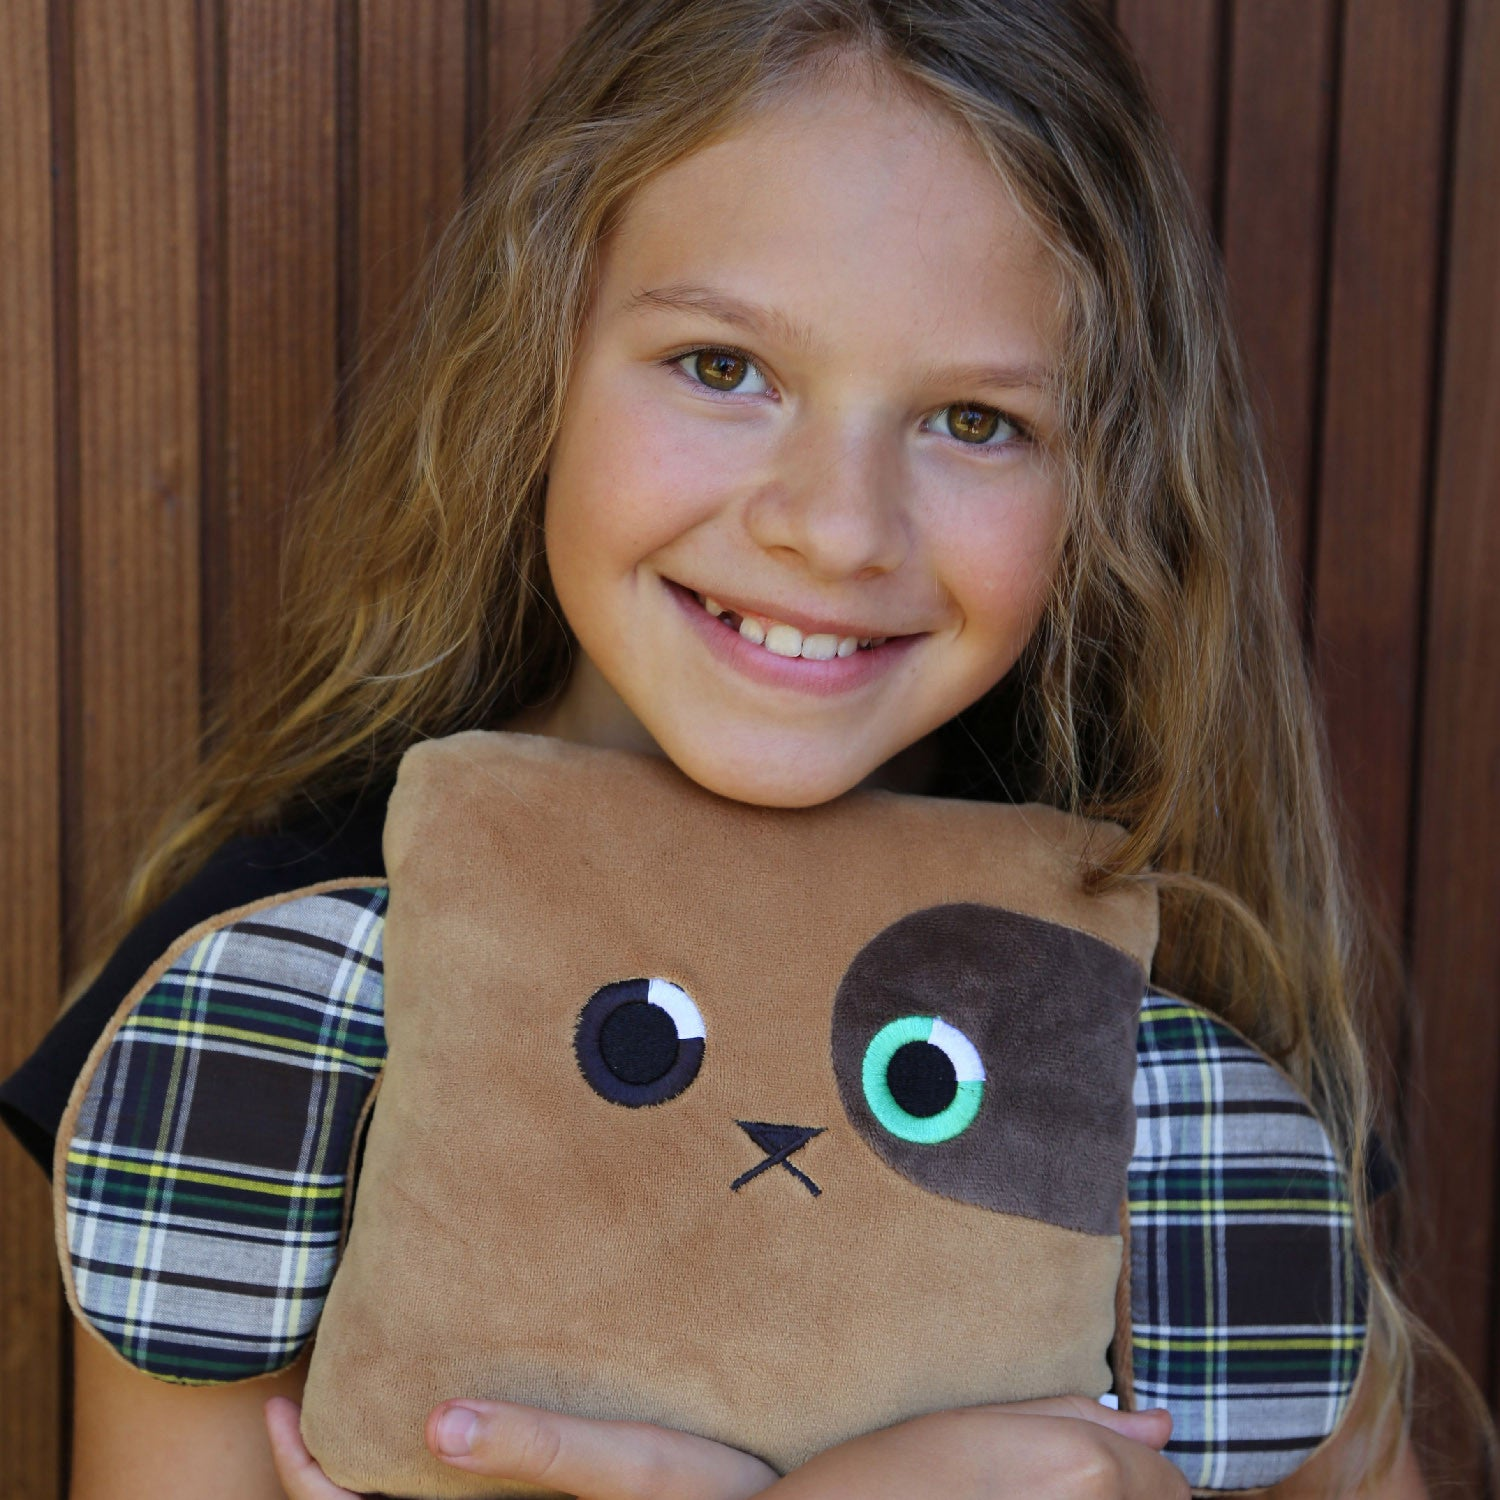 Poketti Puppy Dog Plush Pillow with a Pocket with Founder Toni Loew